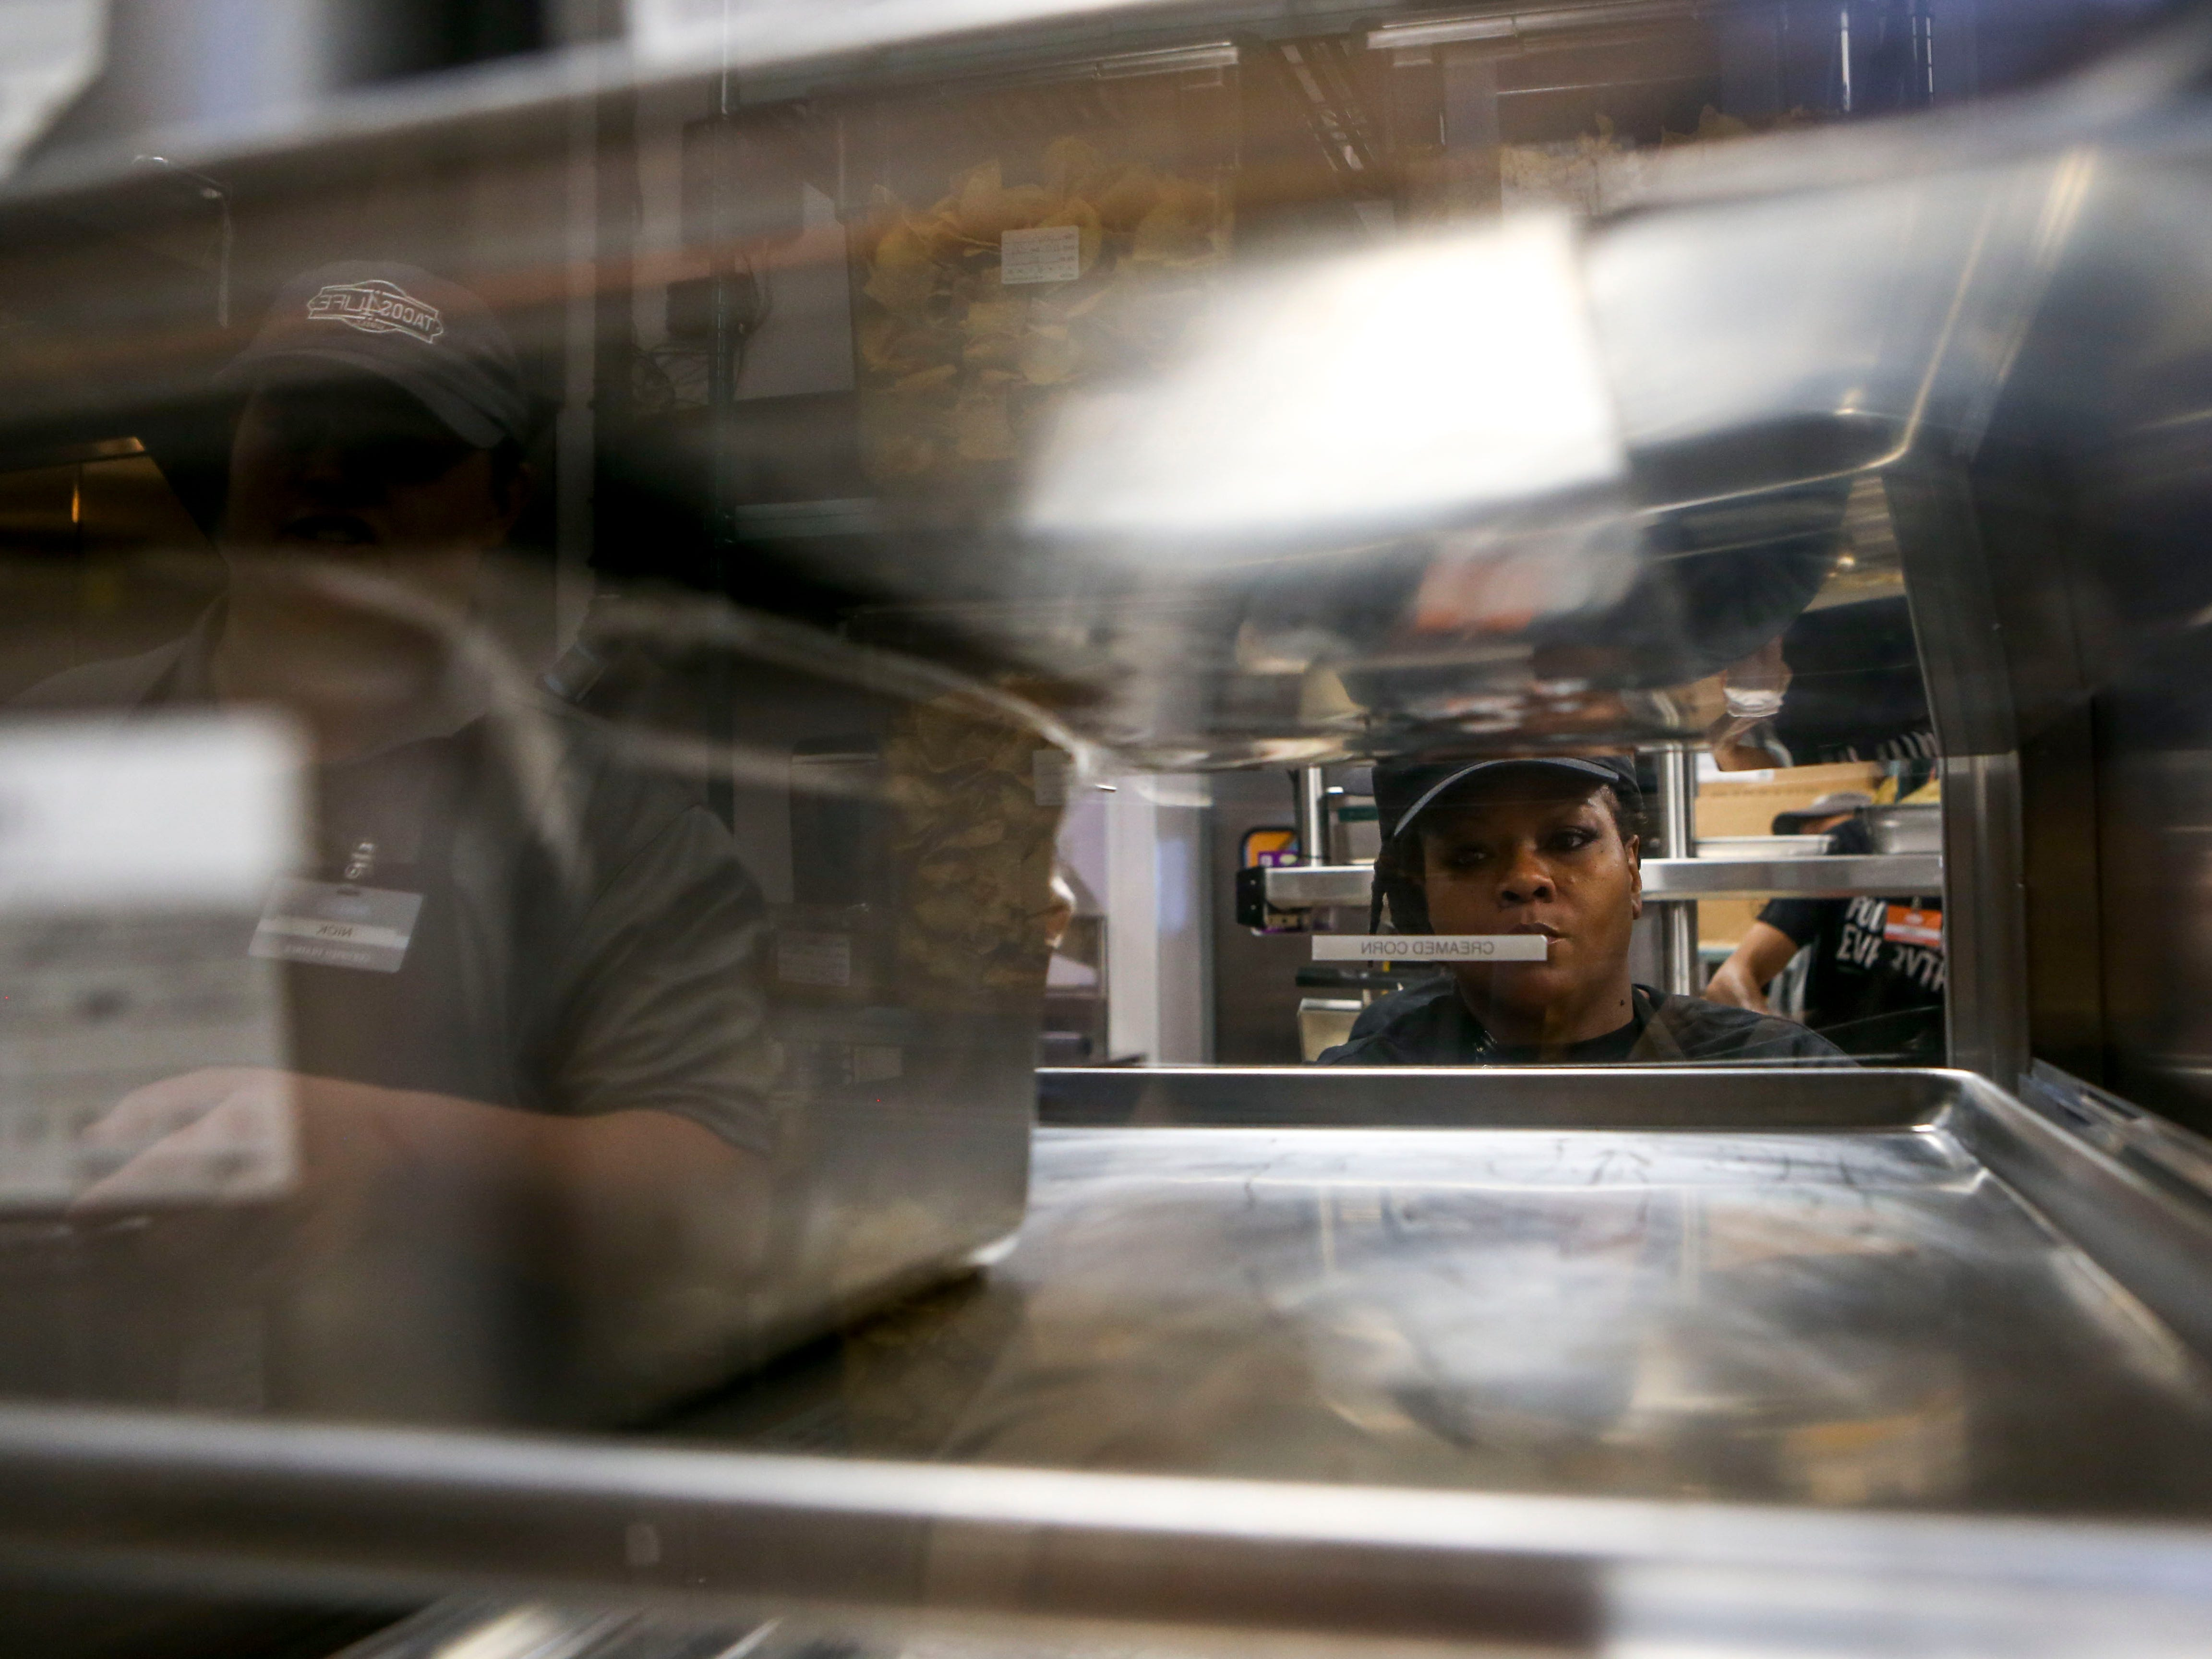 Employees grab trays with ingredients for tacos during the soft opening at Tacos 4 Life, a new restaurant in Jackson, Tenn., on Monday, Oct. 29, 2018.